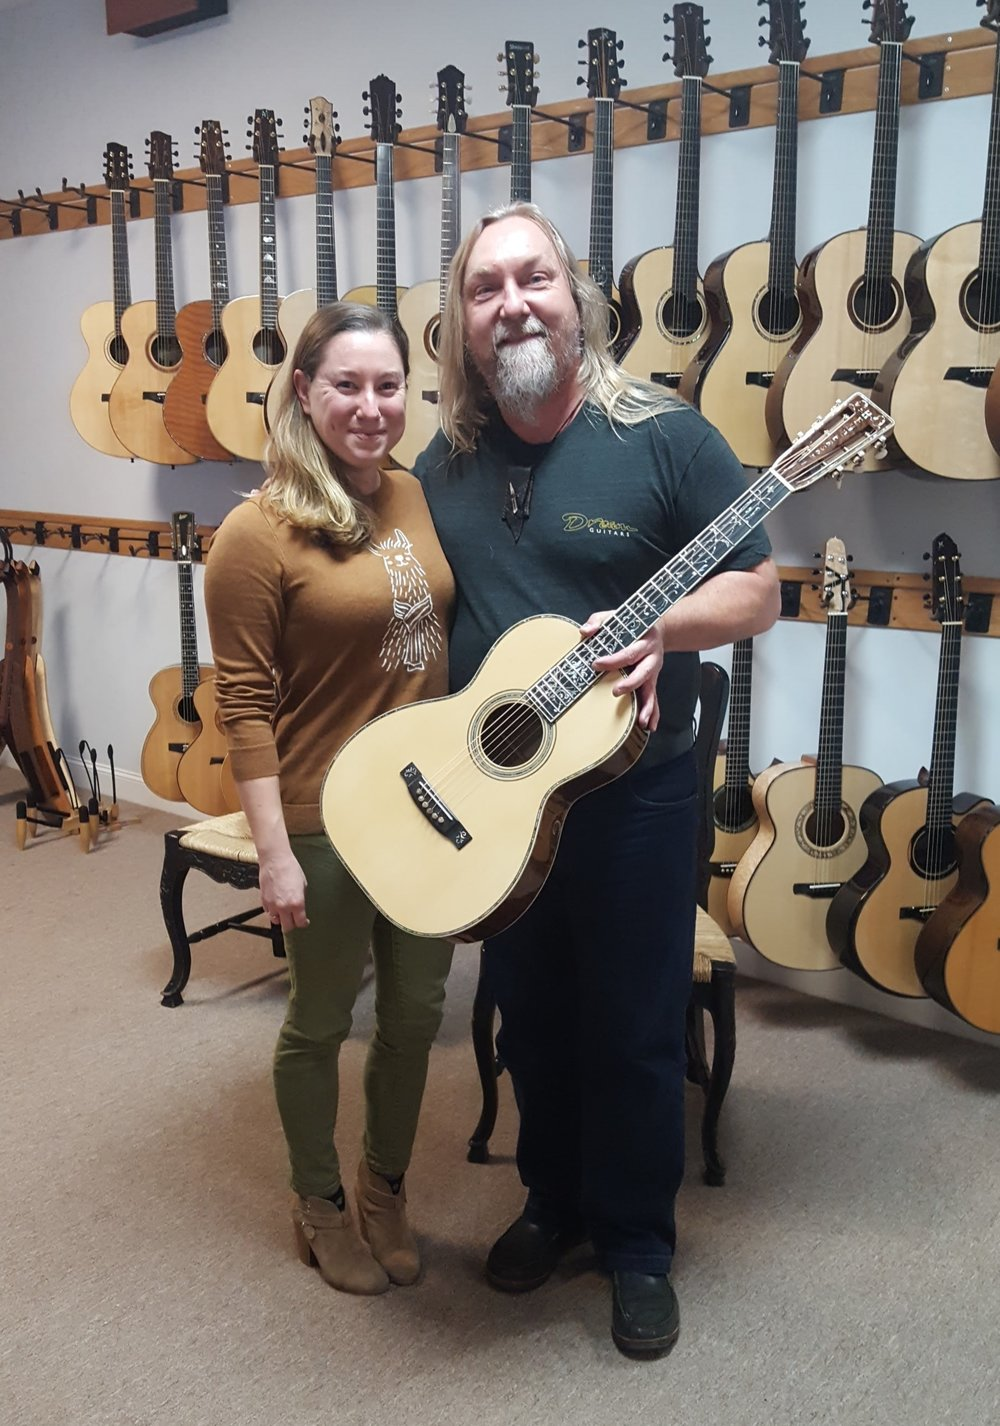 Hanging out with Paul, owner of Dream Guitars in Weaverville, NC.